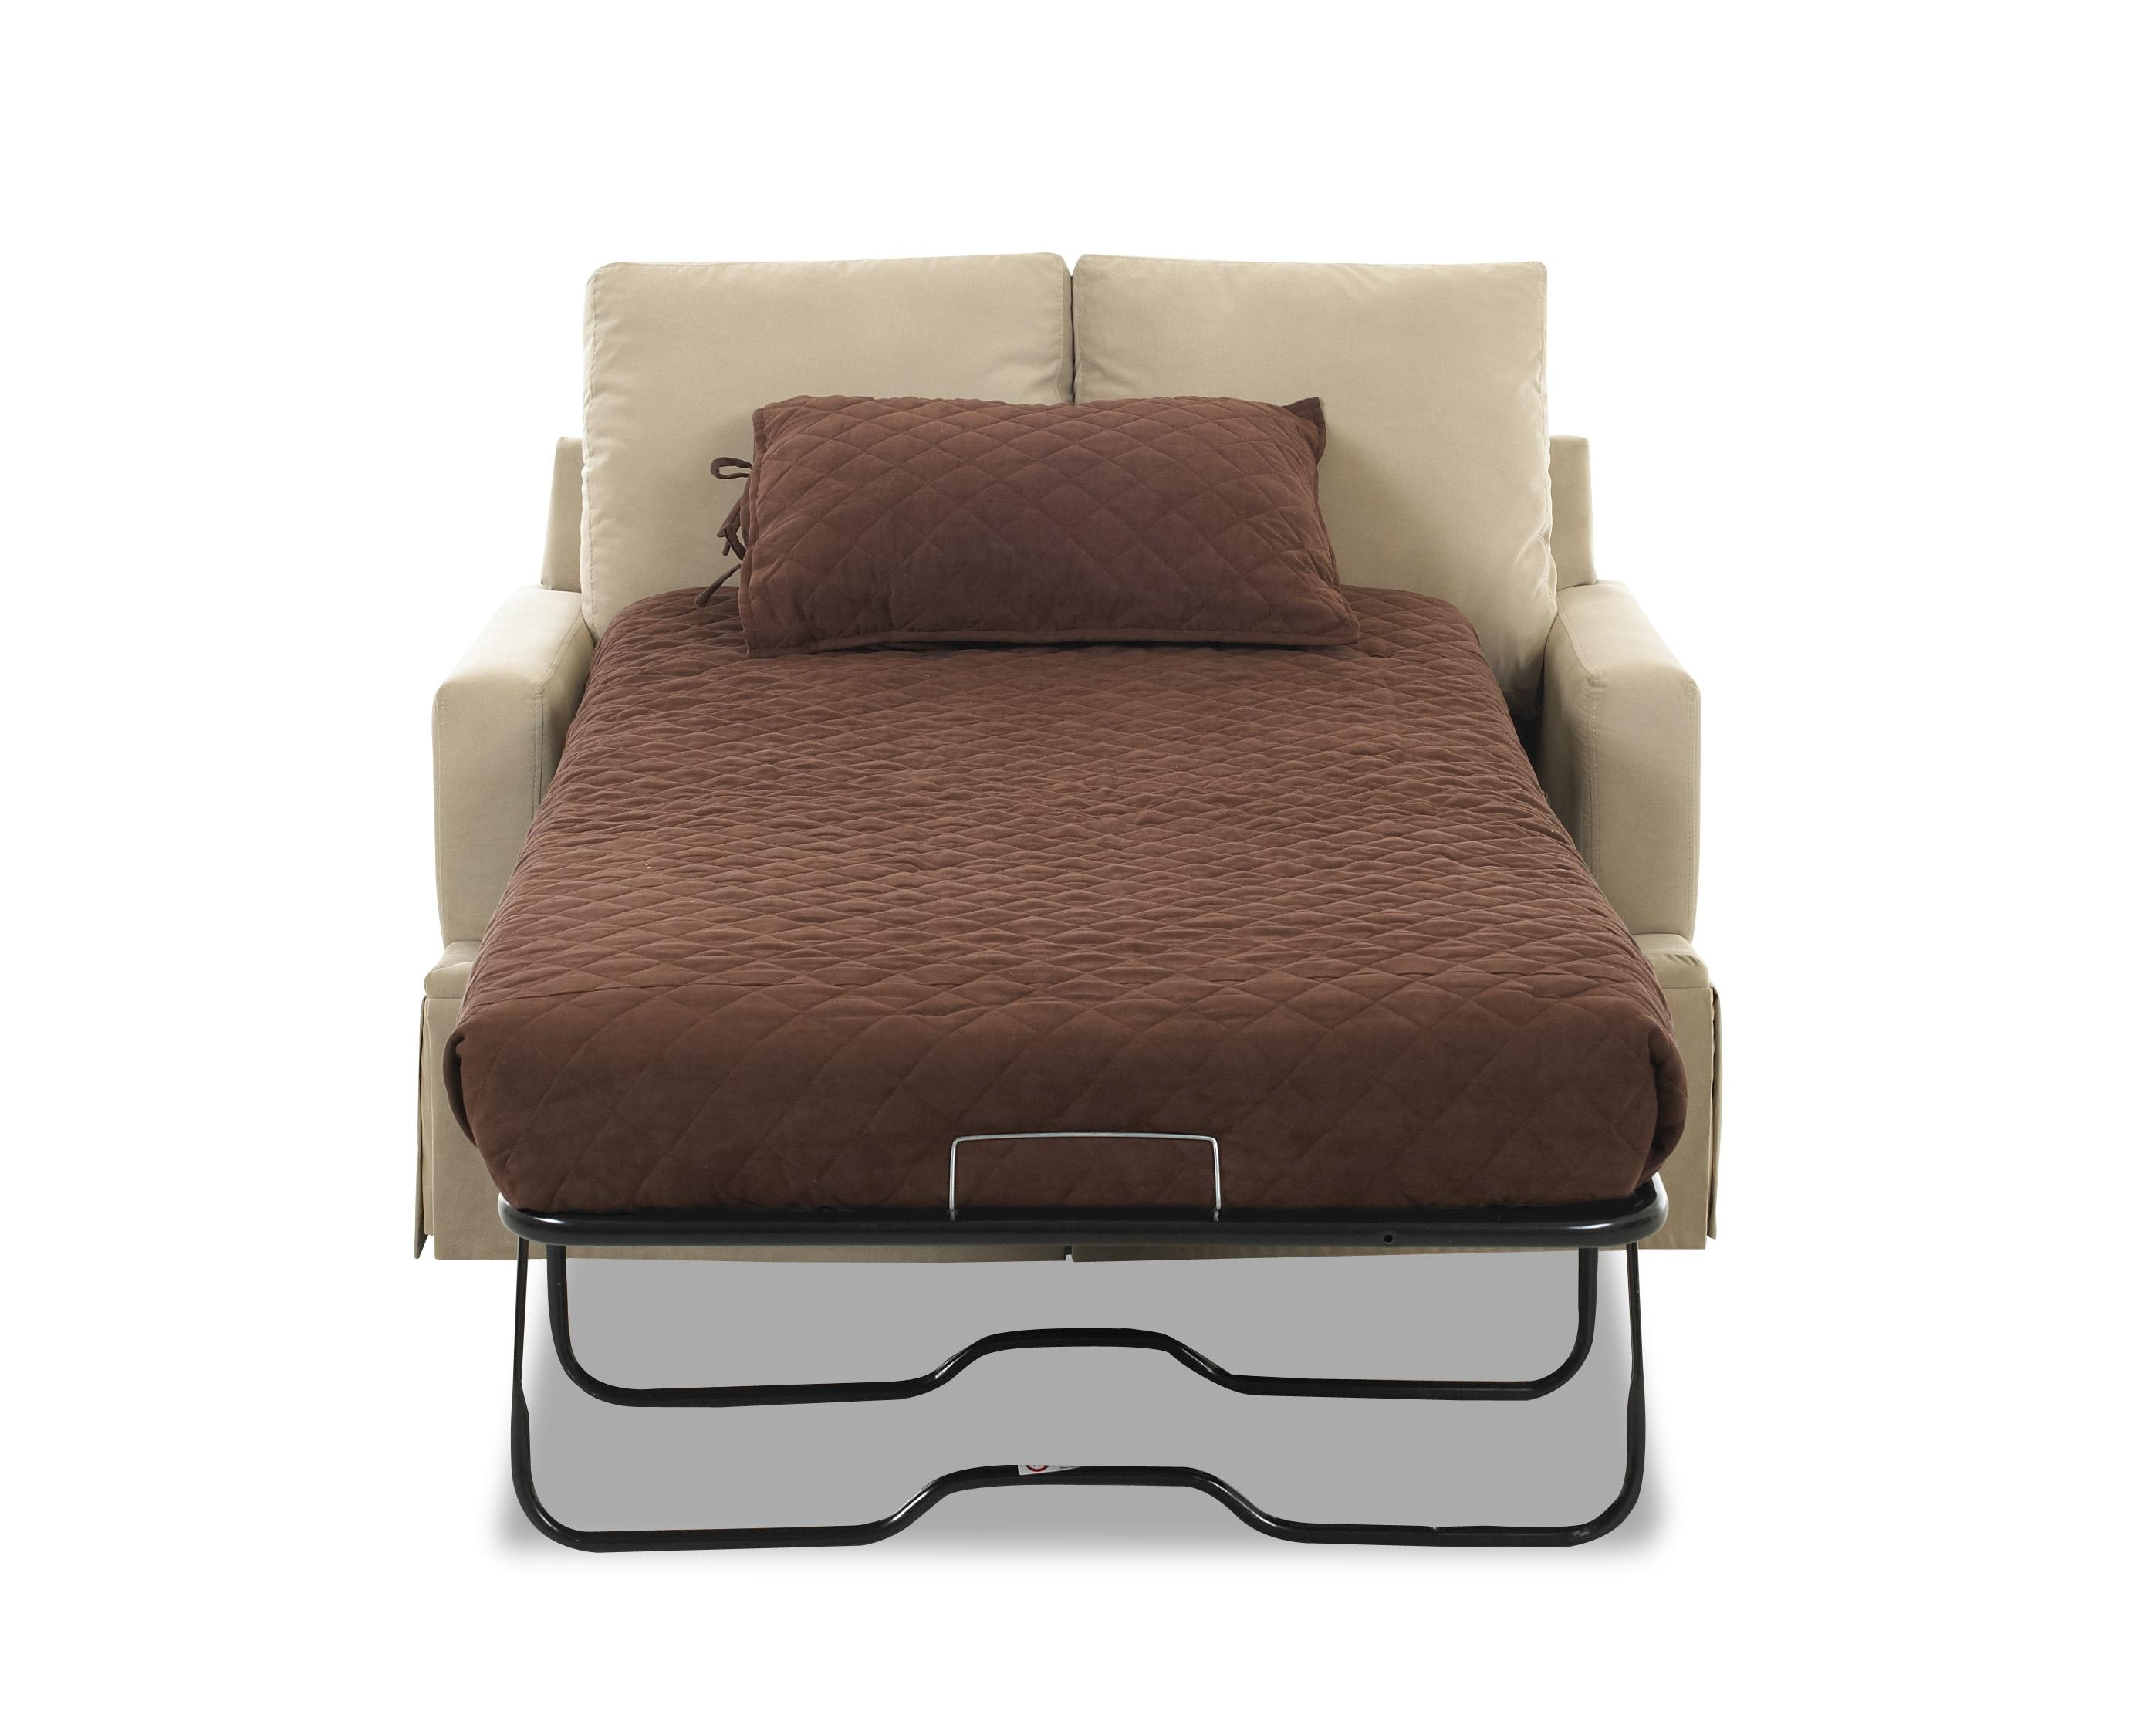 cotton sofa bed sheets reviews 2018 australia sleeper 300tc sofabed